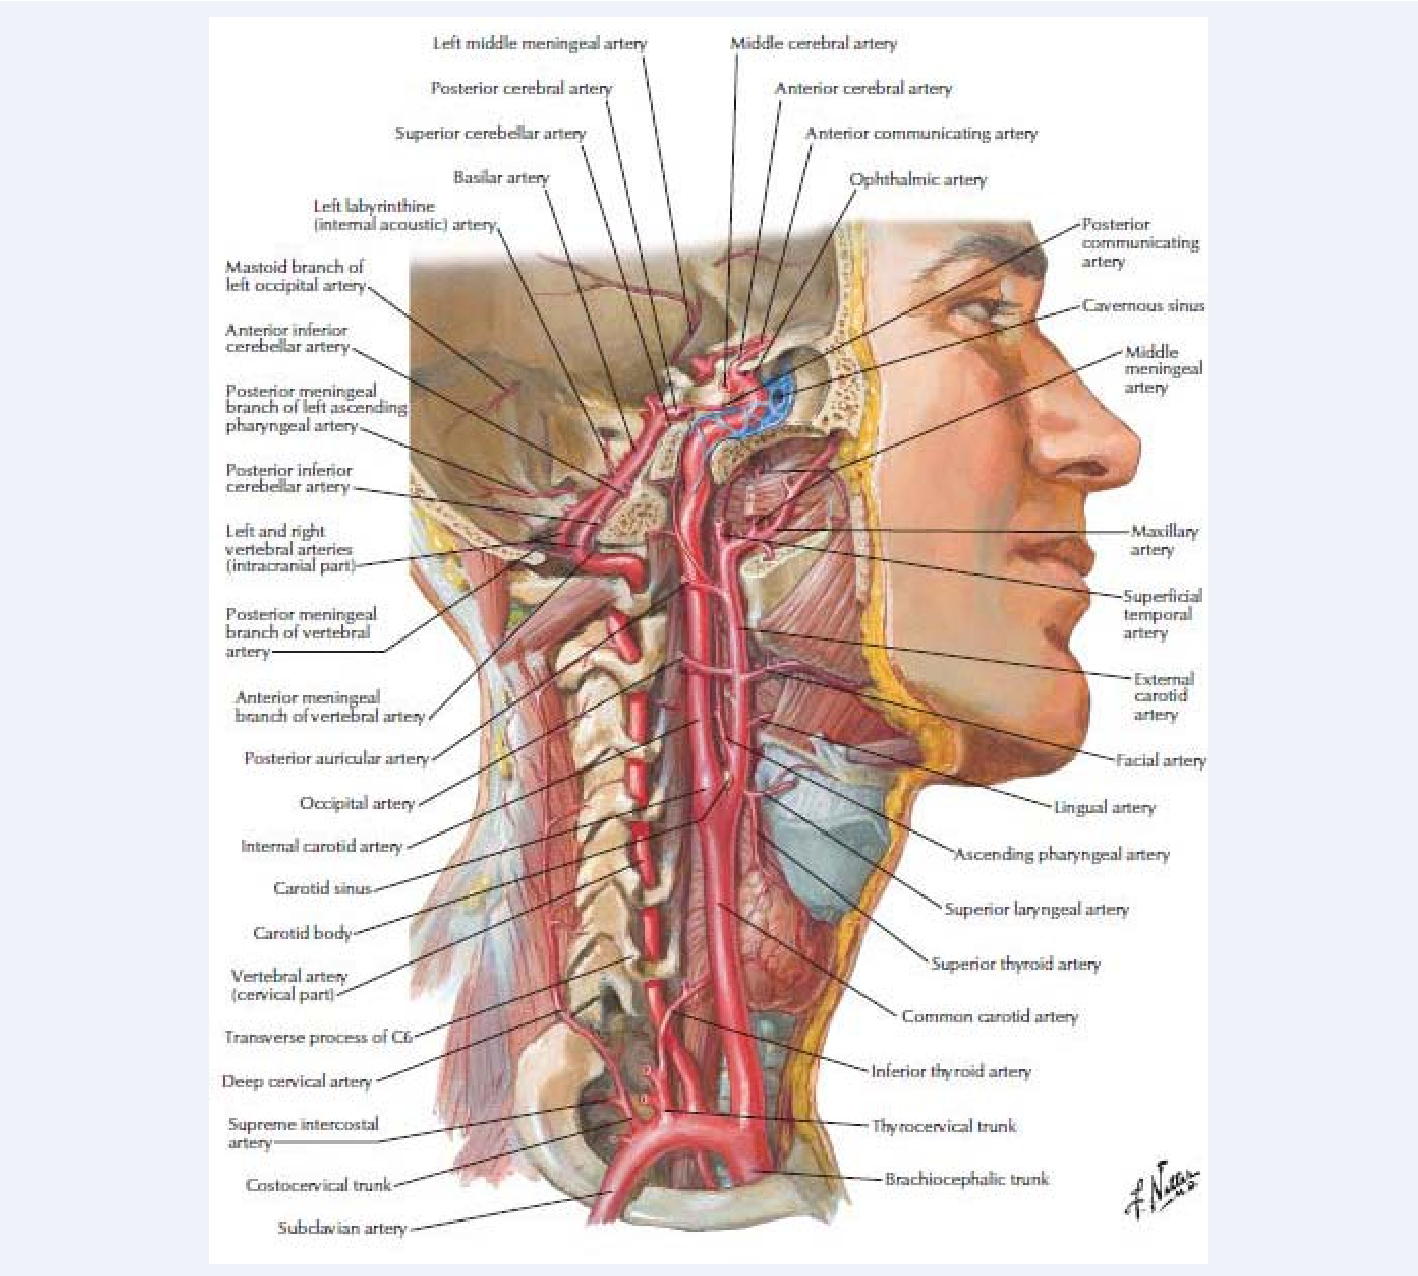 Internal Carotid Artery Kinks and Coils : Repair with Autologous ...